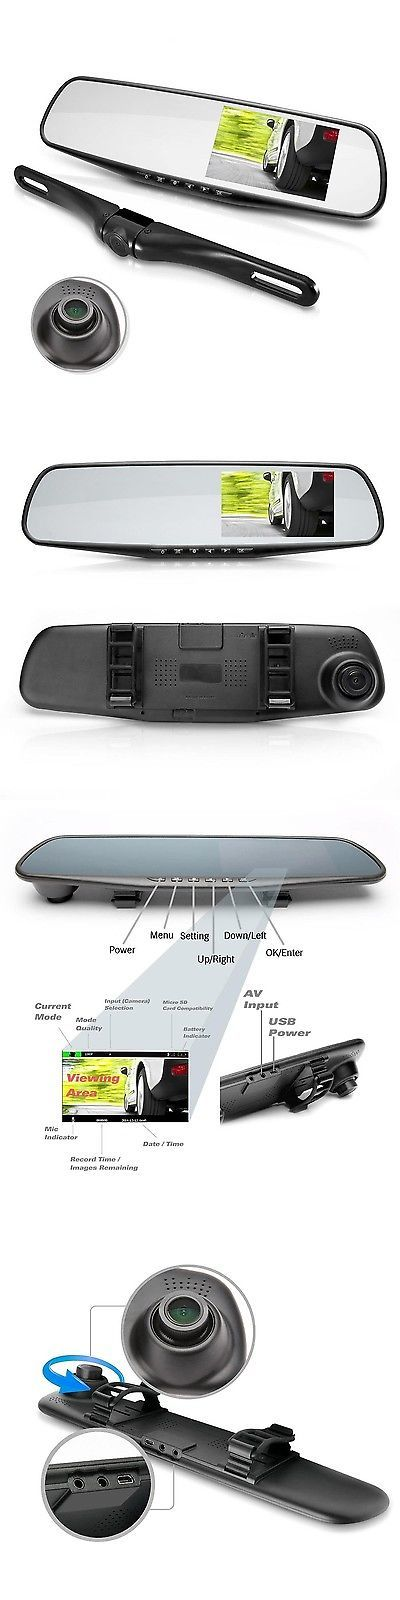 17 best ideas about rear view mirror camera on pinterest rear mirror rear view and motorcycle. Black Bedroom Furniture Sets. Home Design Ideas